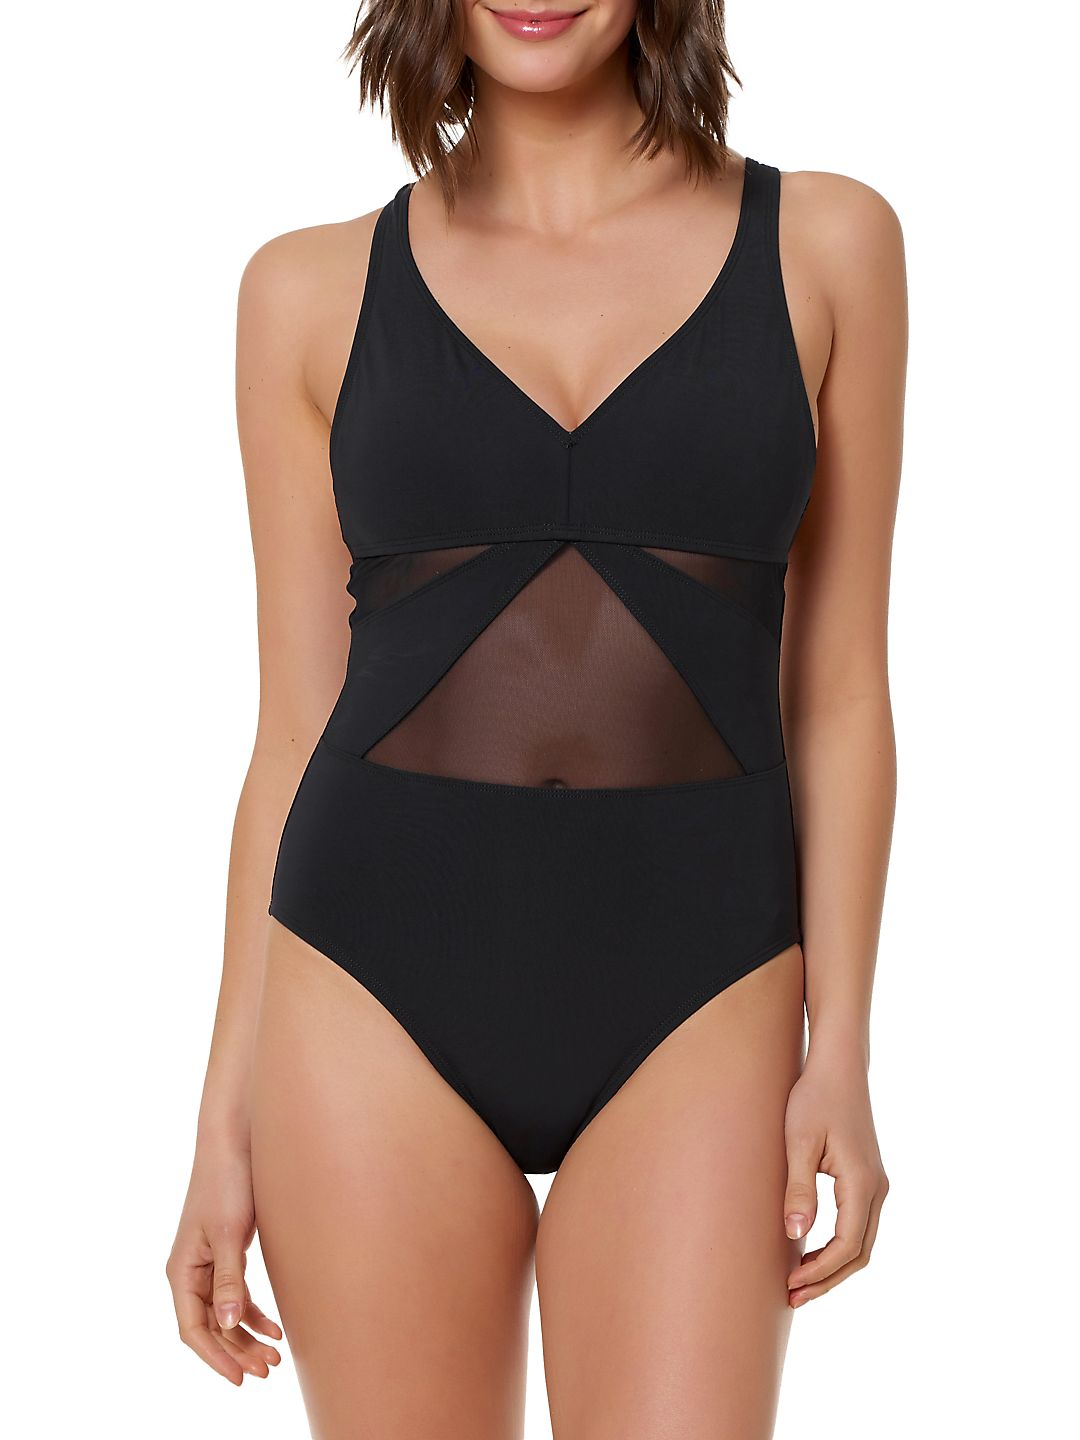 Don't Mesh With Me V-Neck Mesh One-Piece Swimsuit